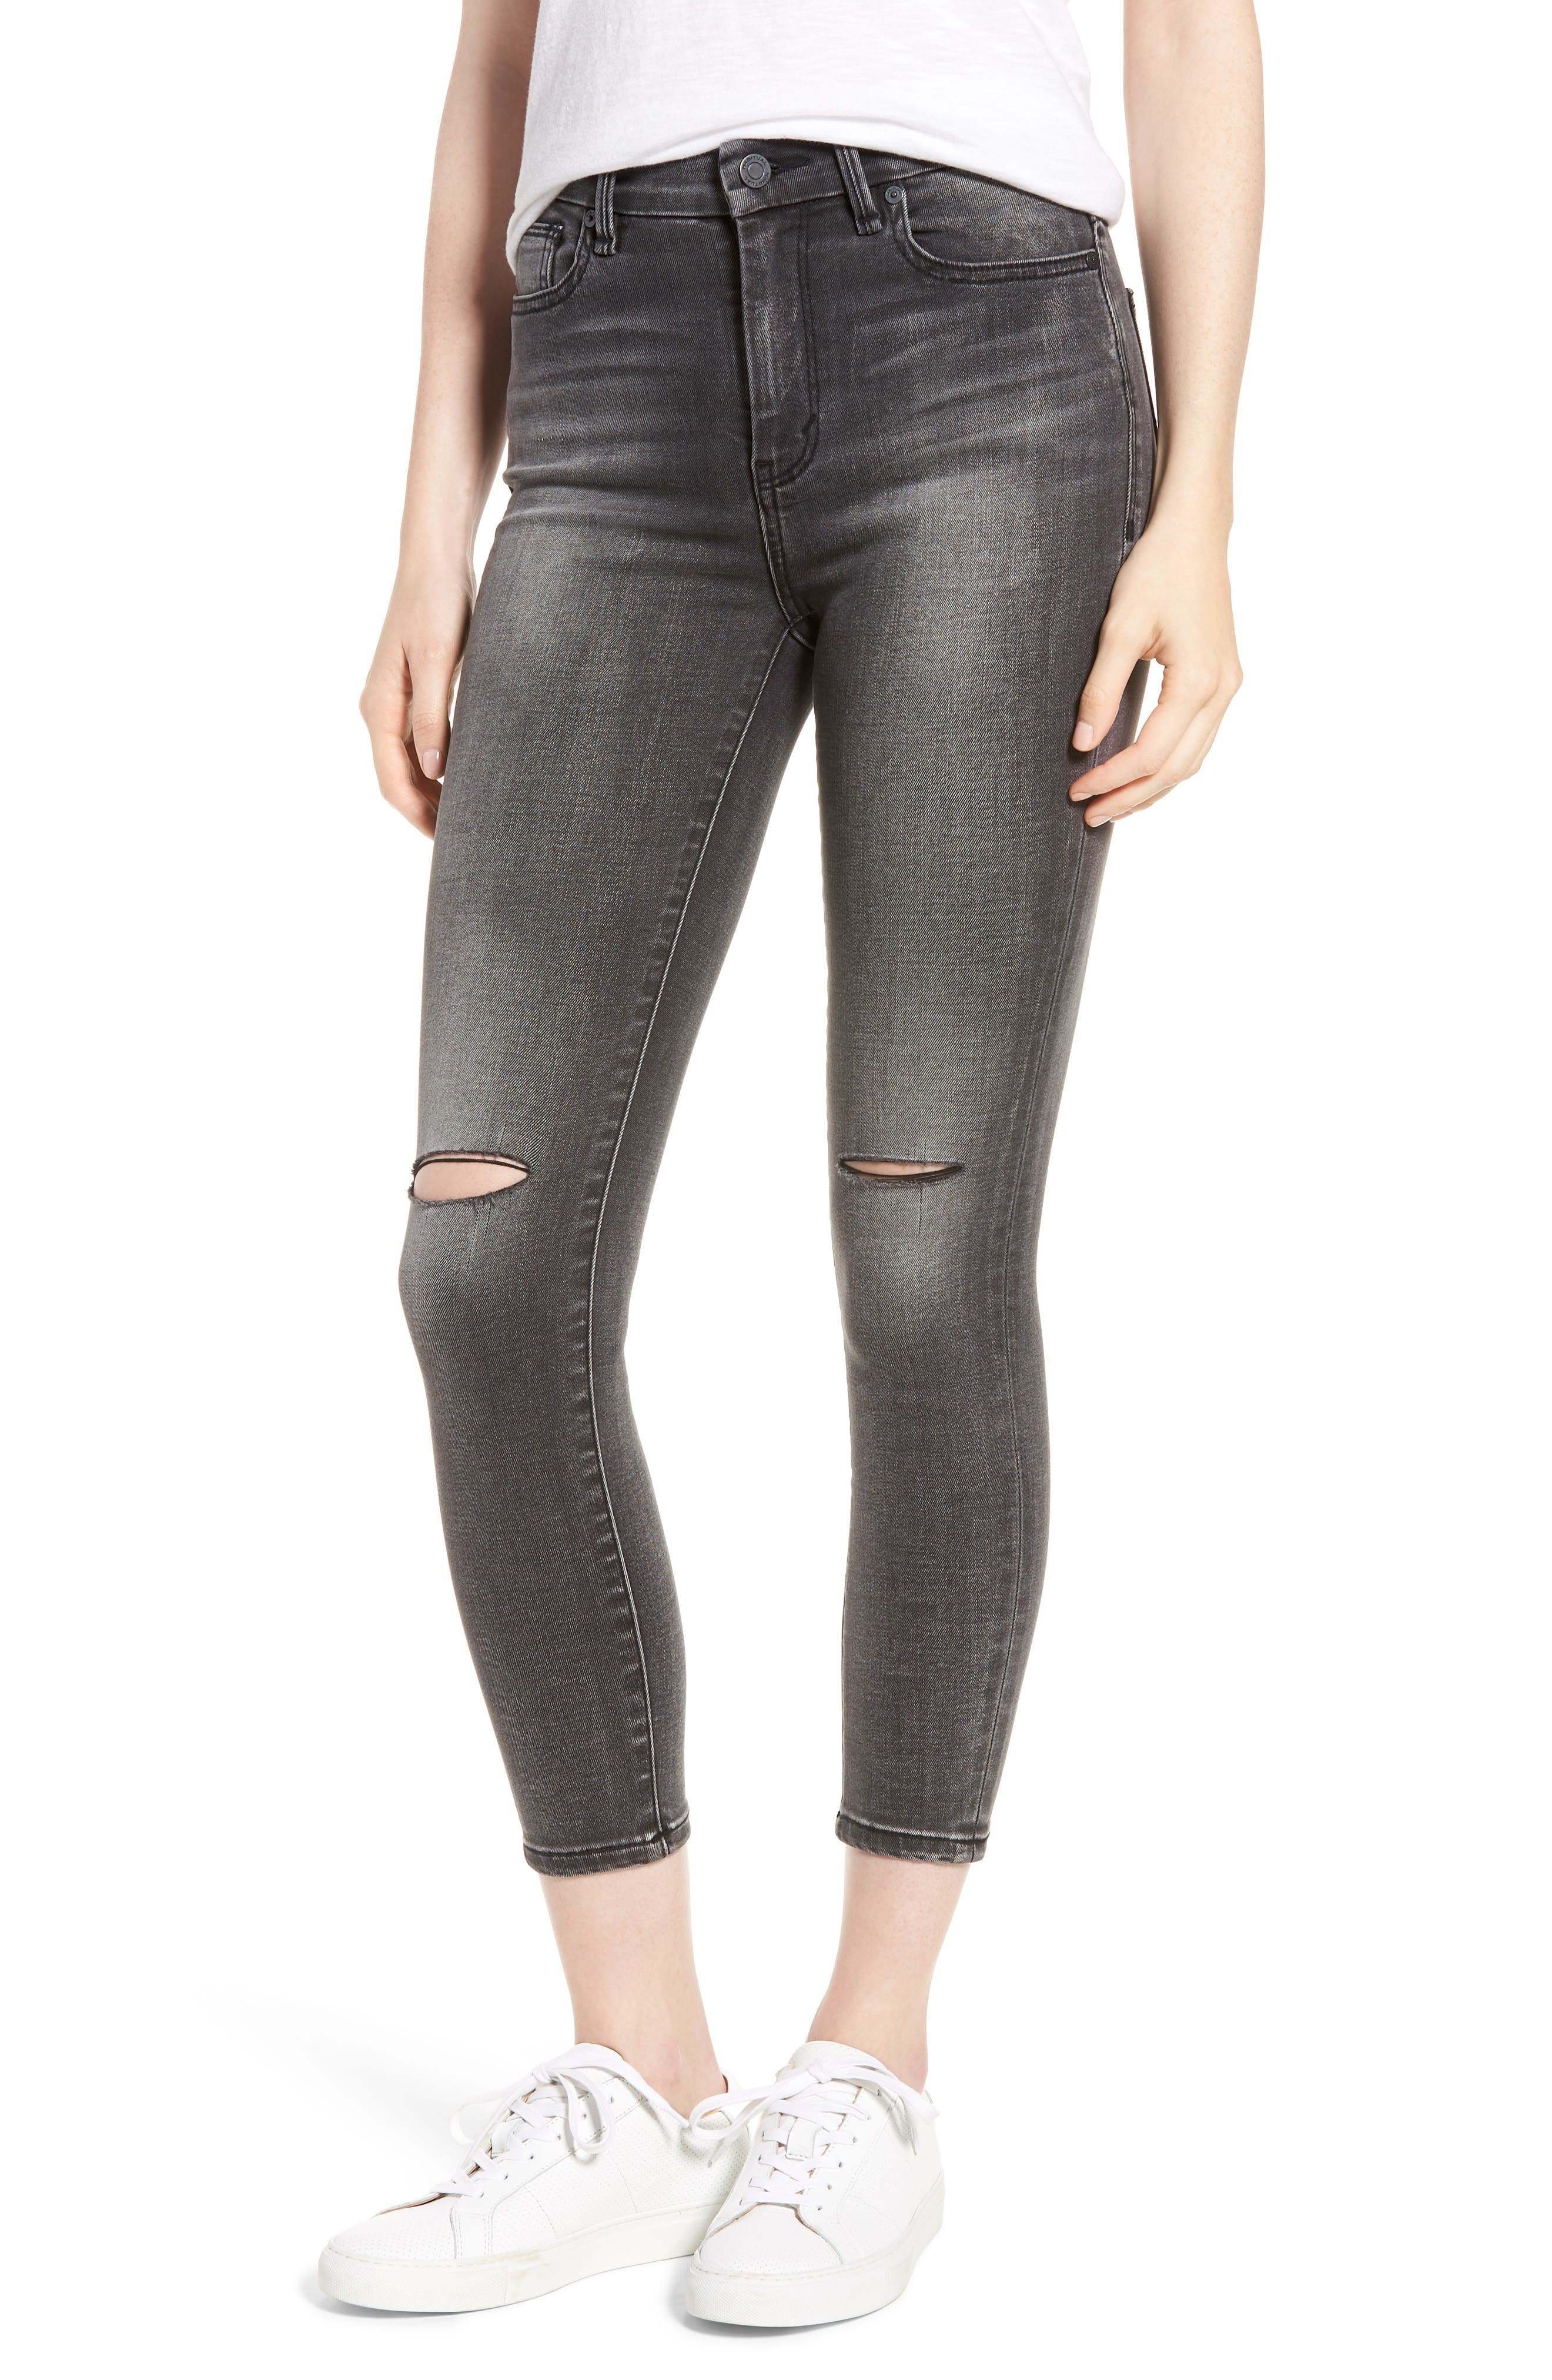 Cressa High Rise Ankle Skinny Jeans,                         Main,                         color, 022